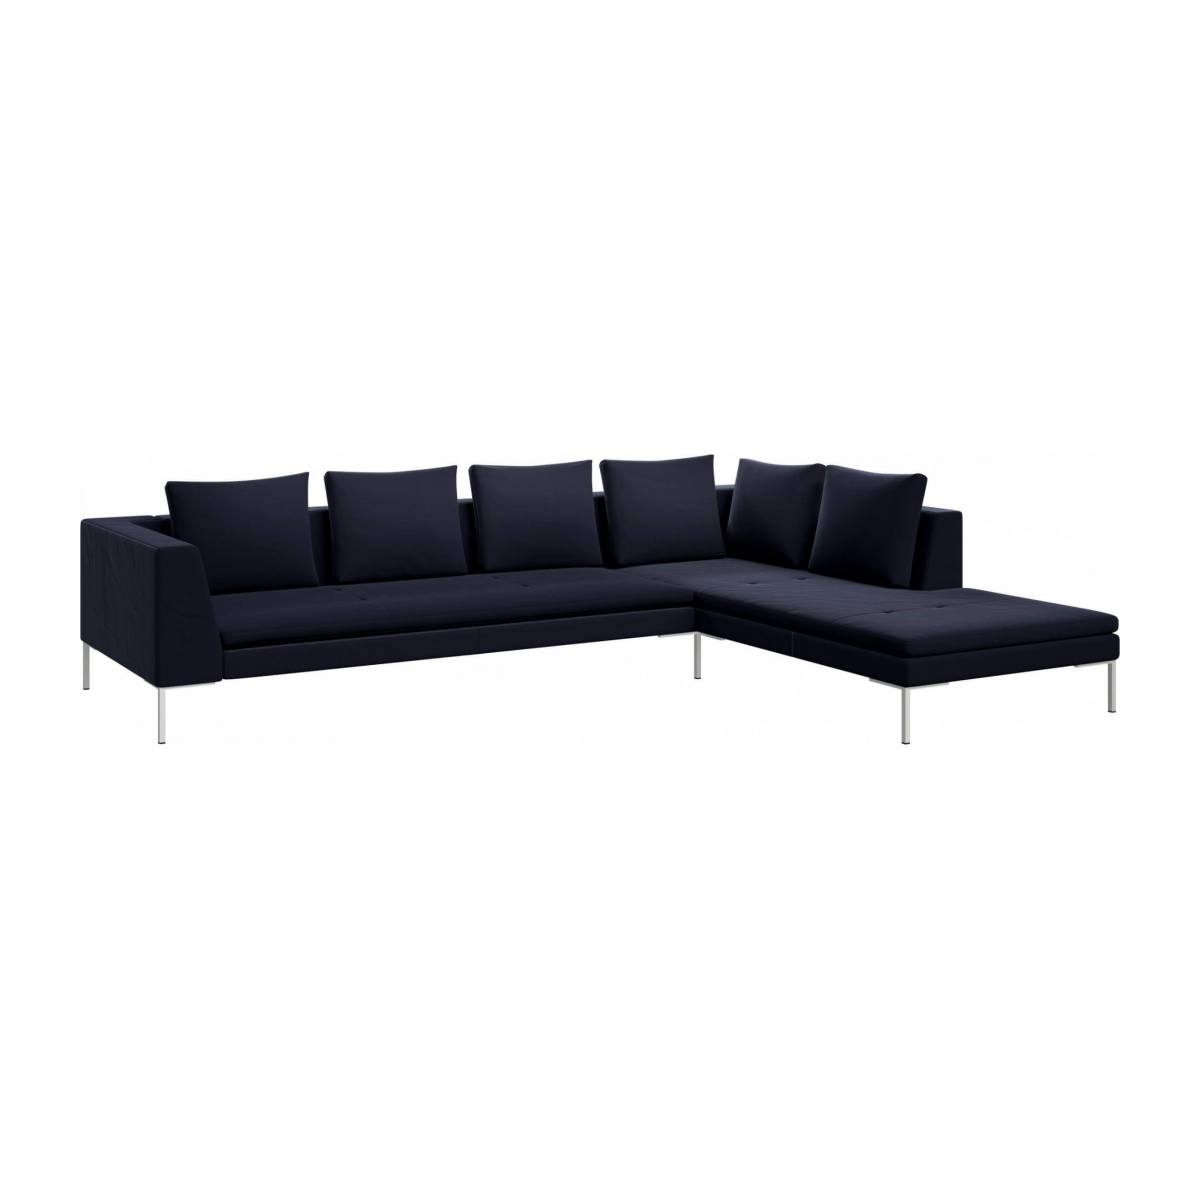 3 seater sofa with chaise longue on the right in Super Velvet fabric, dark blue  n°2